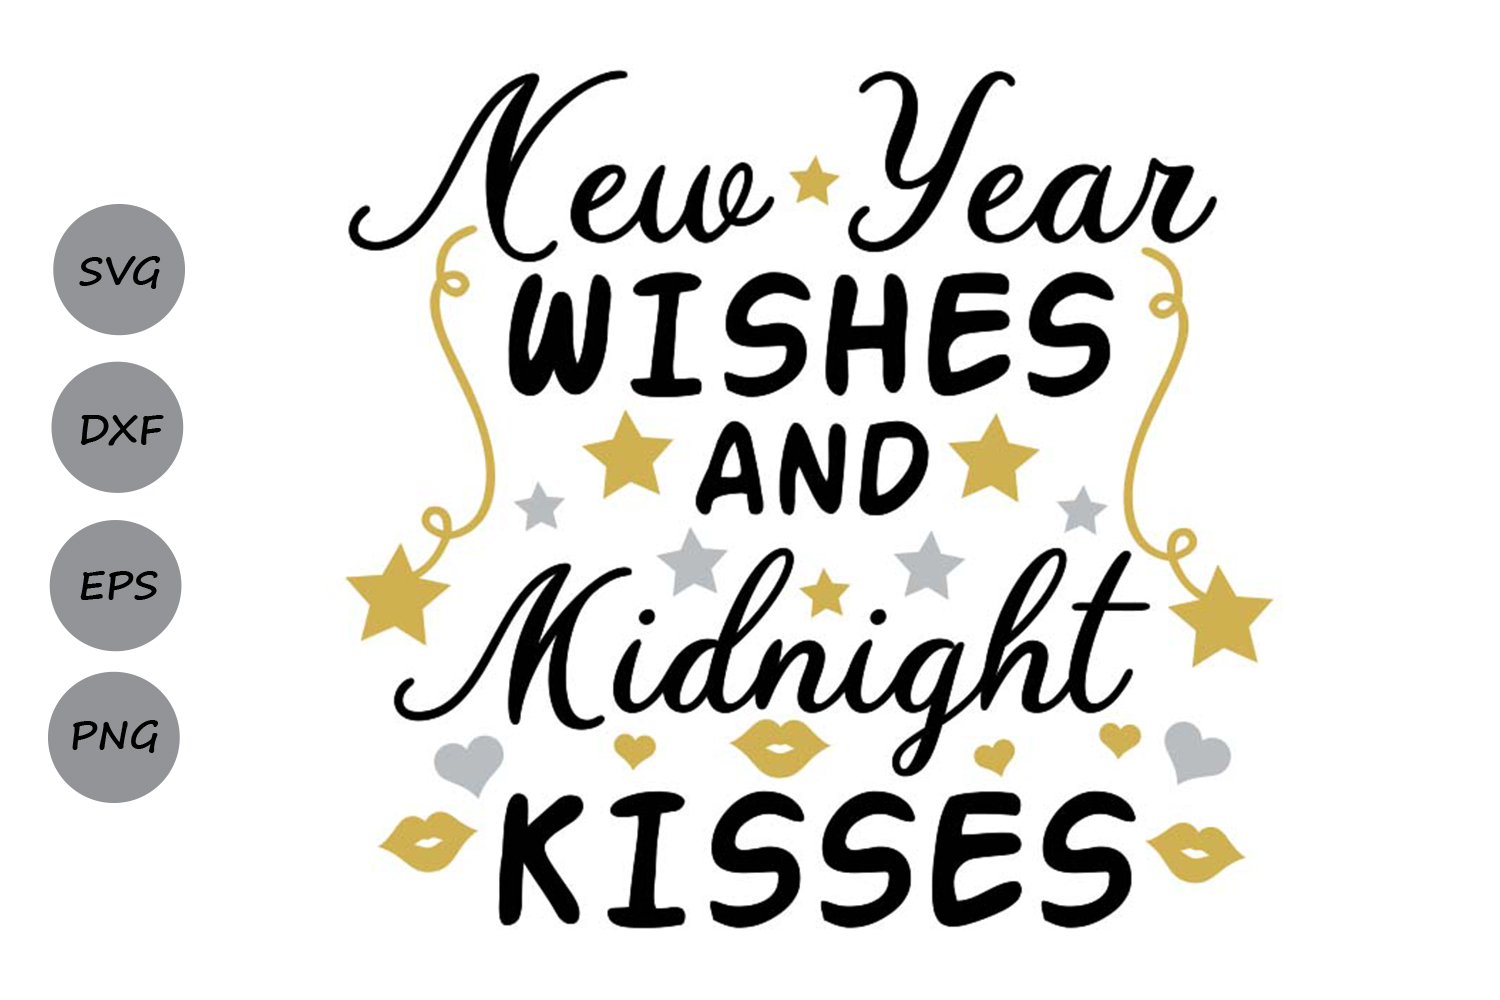 New Year Wishes And Midnight Kisses Svg Graphic By Cosmosfineart